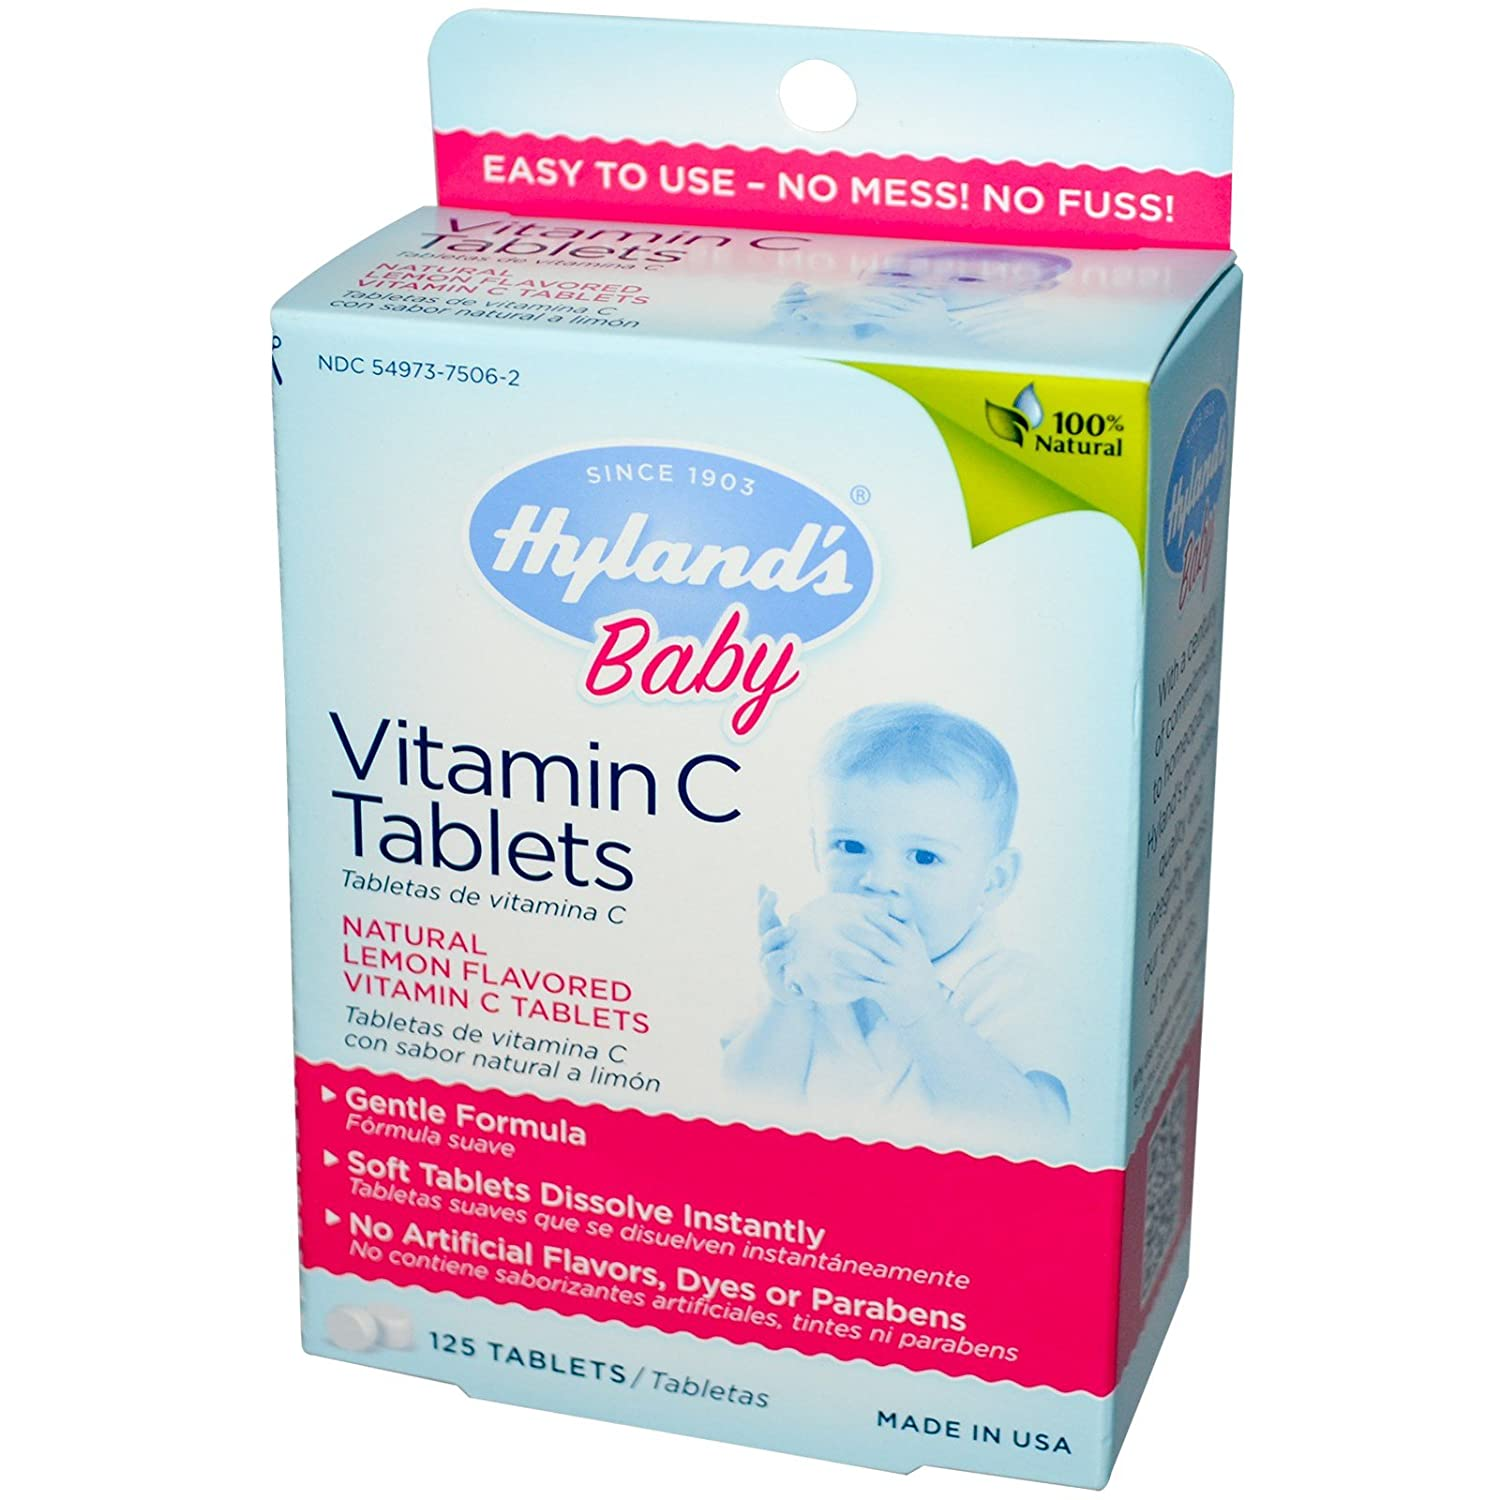 Amazon.com: Hylands, Baby, Vitamin C Tablets, Natural Lemon Flavored, 125 Tablets - 3PC: Health & Personal Care